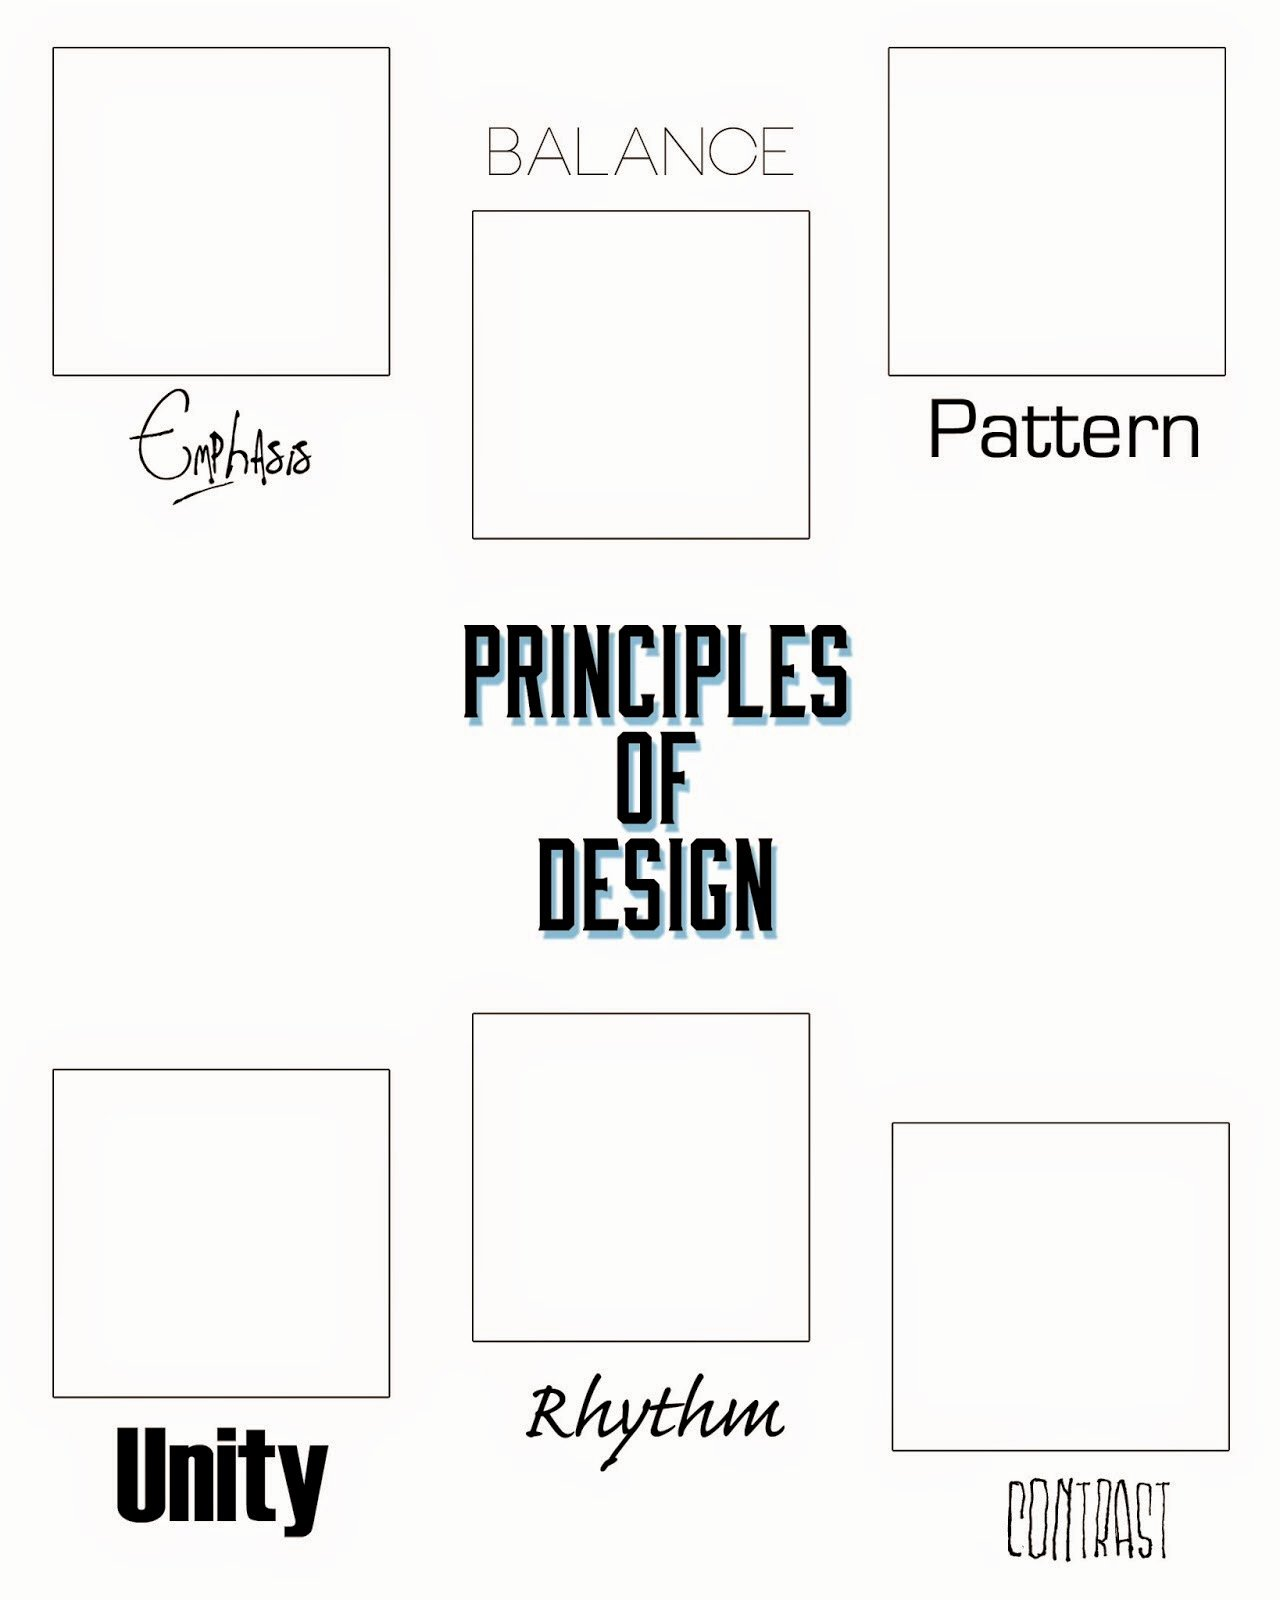 elements and principles of design unit